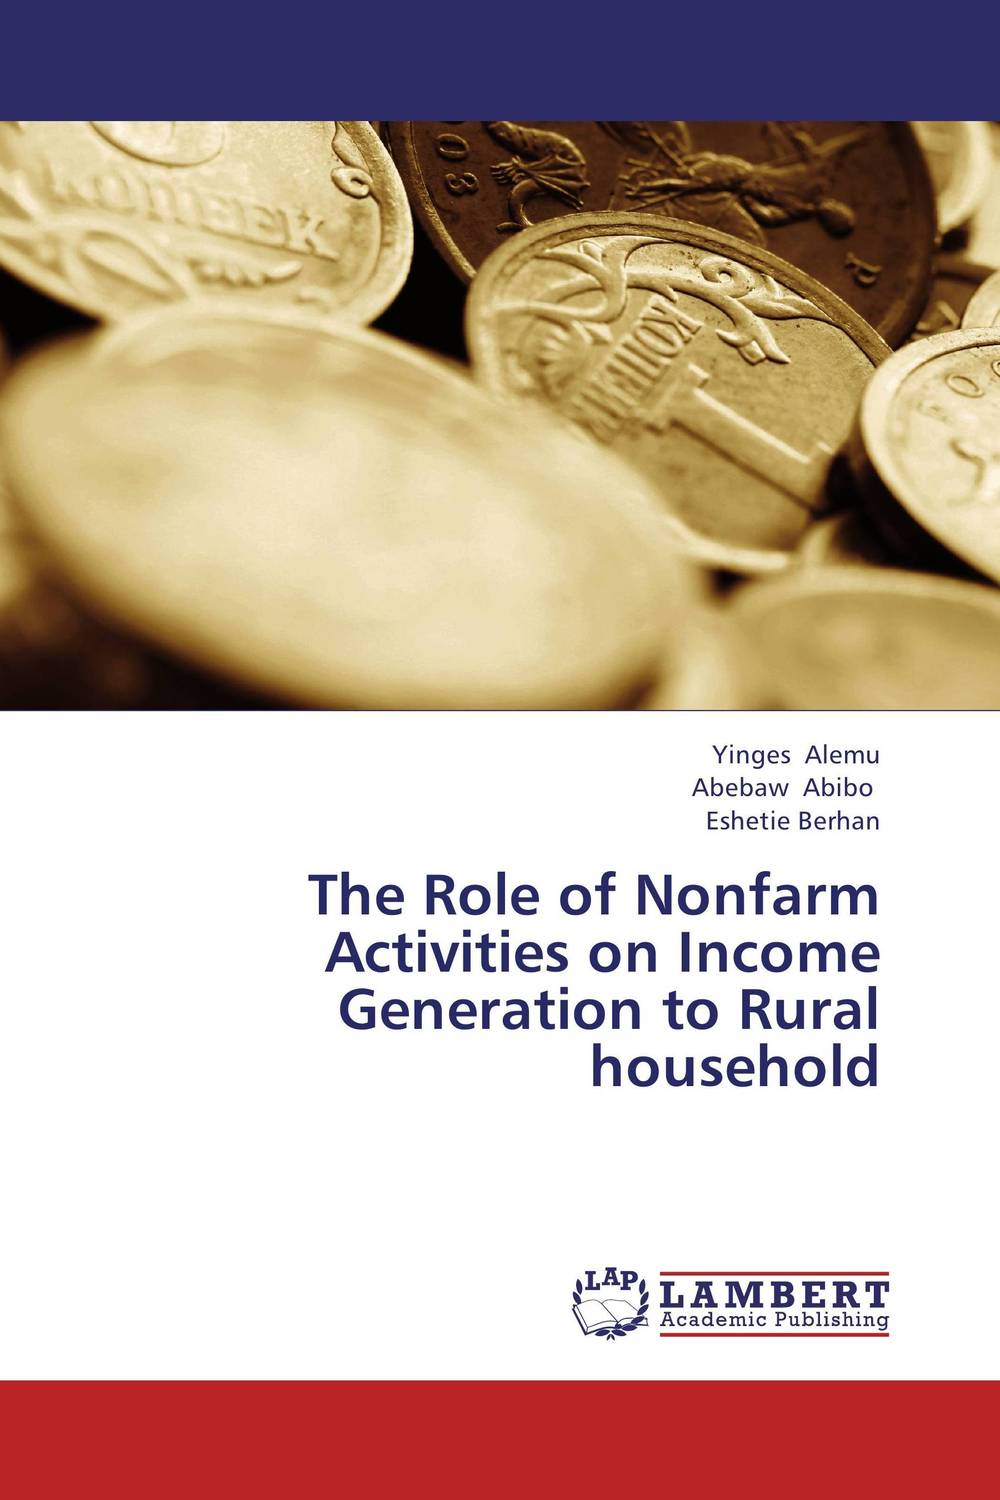 The Role of Nonfarm Activities on Income Generation to Rural household role of ict in rural poverty alleviation